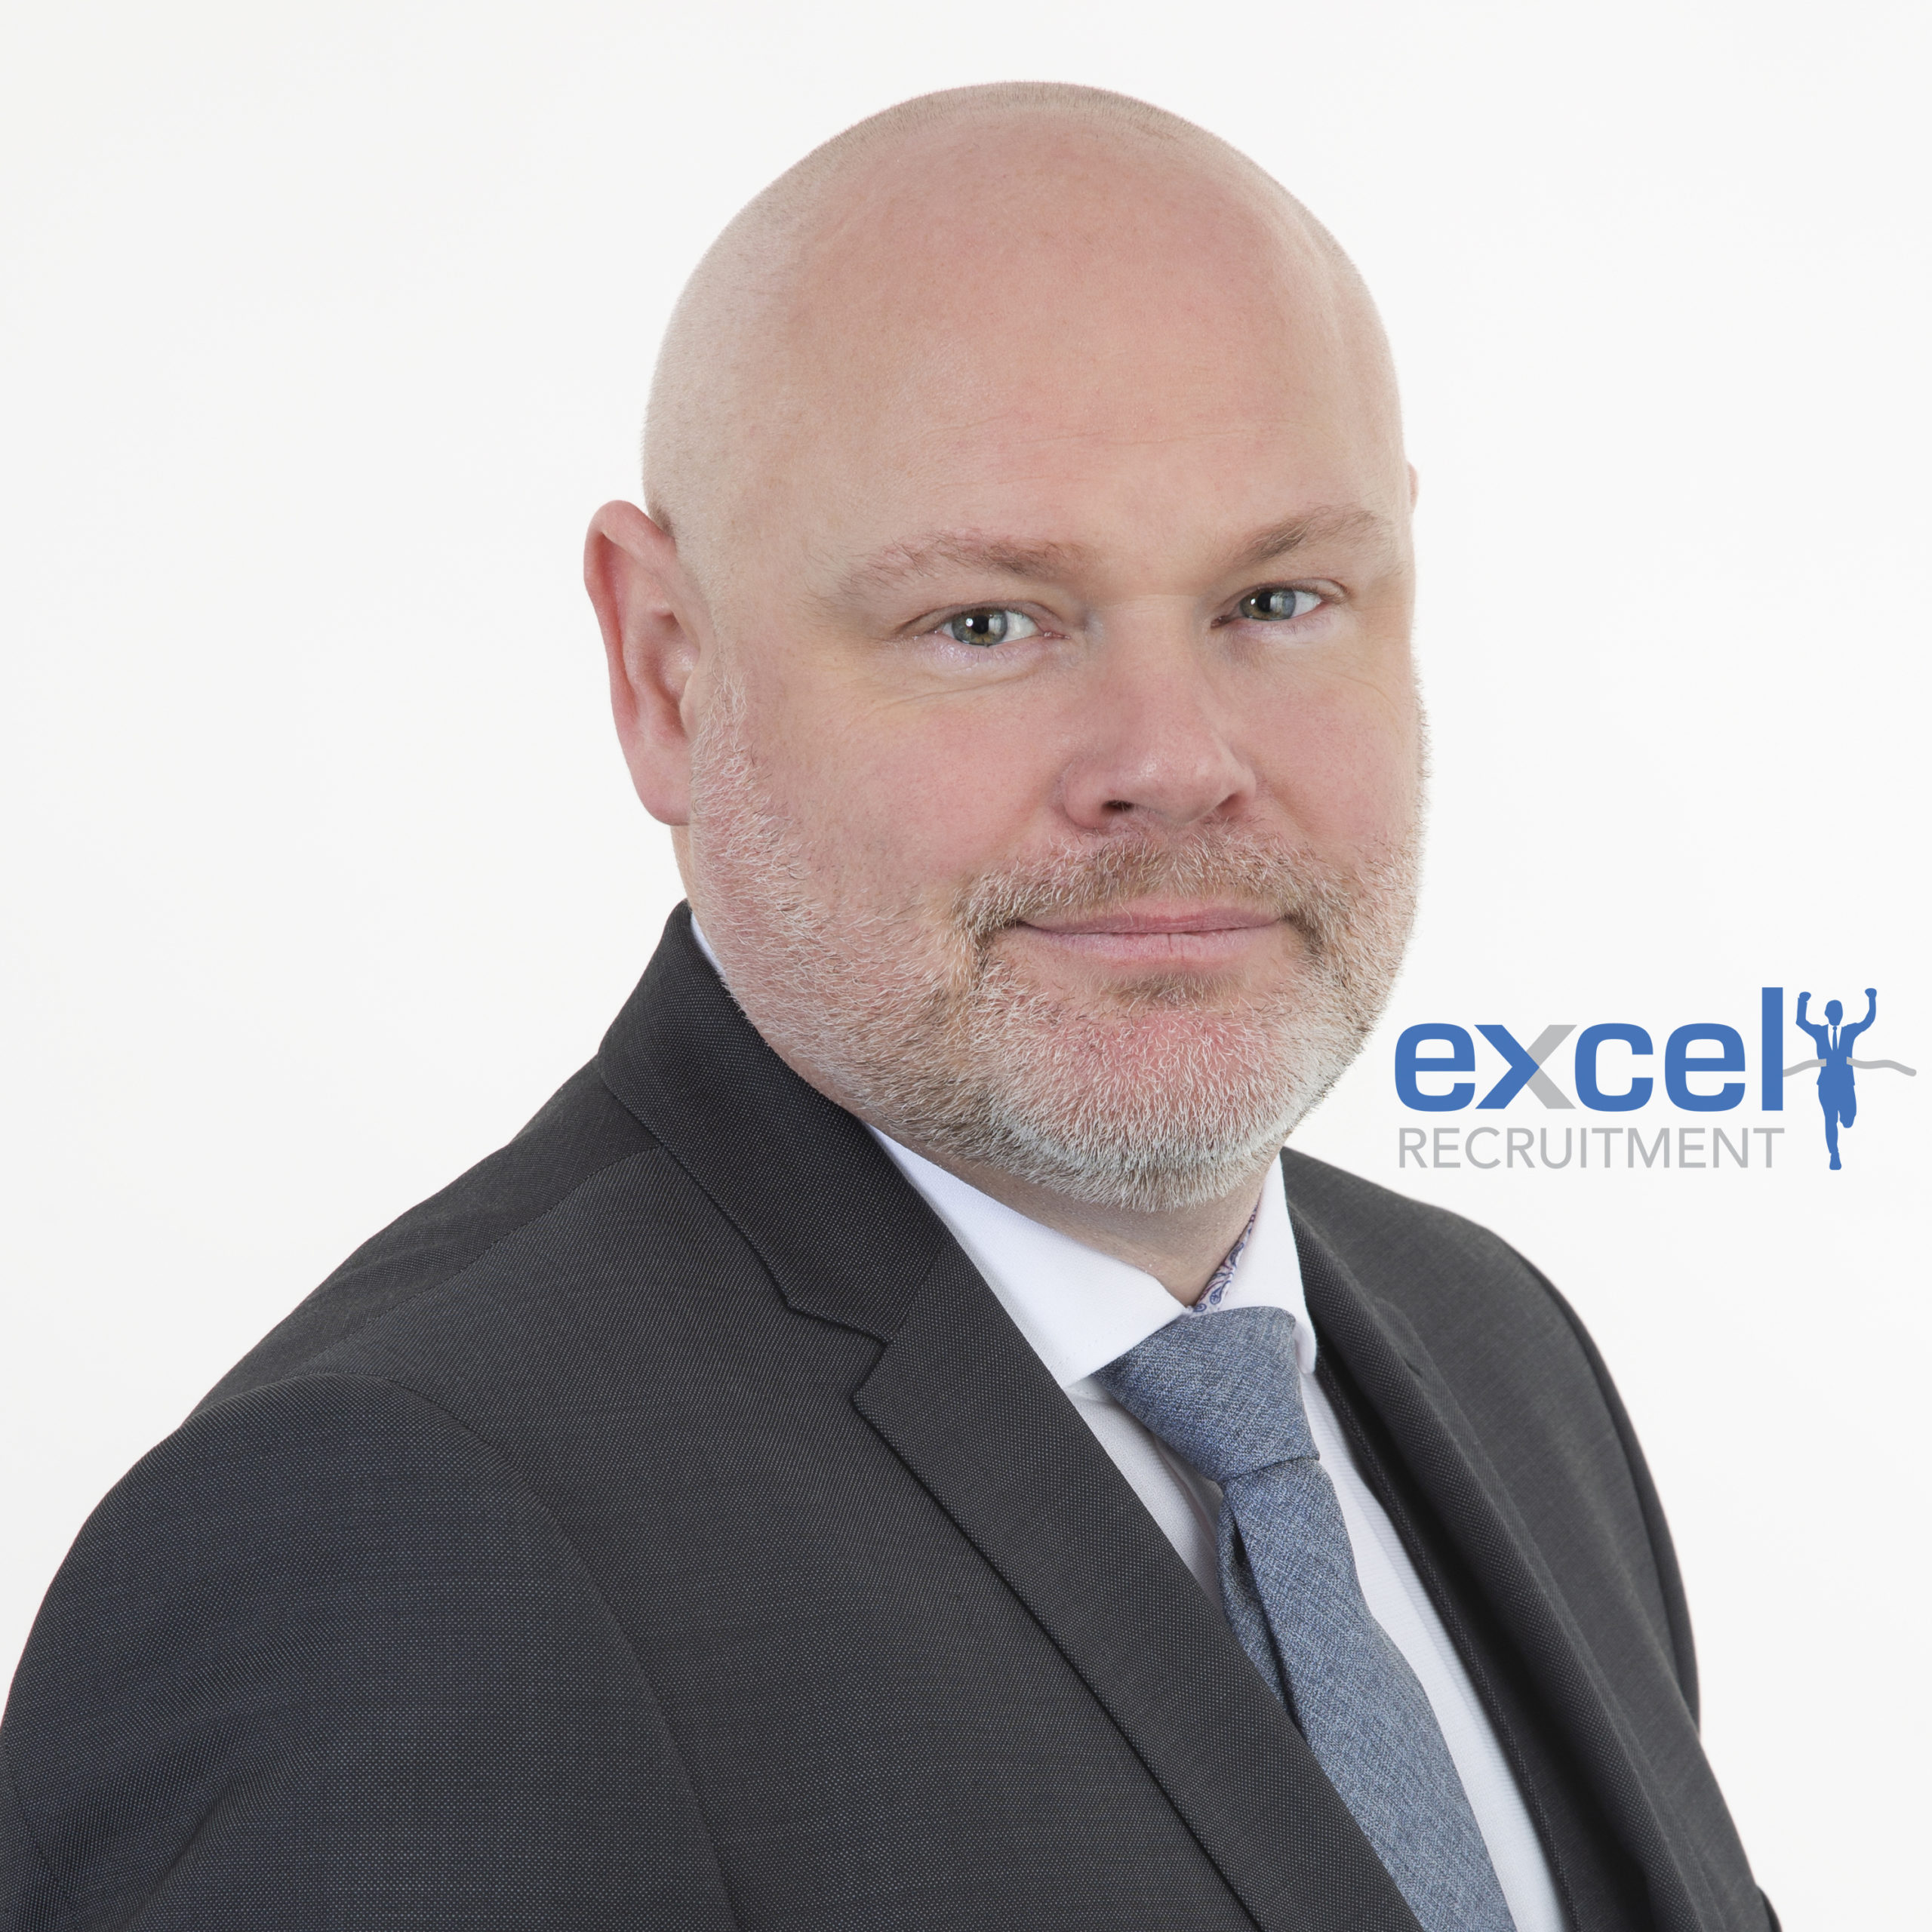 BARRY WHELAN, CEO OF EXCEL RECRUITMENT